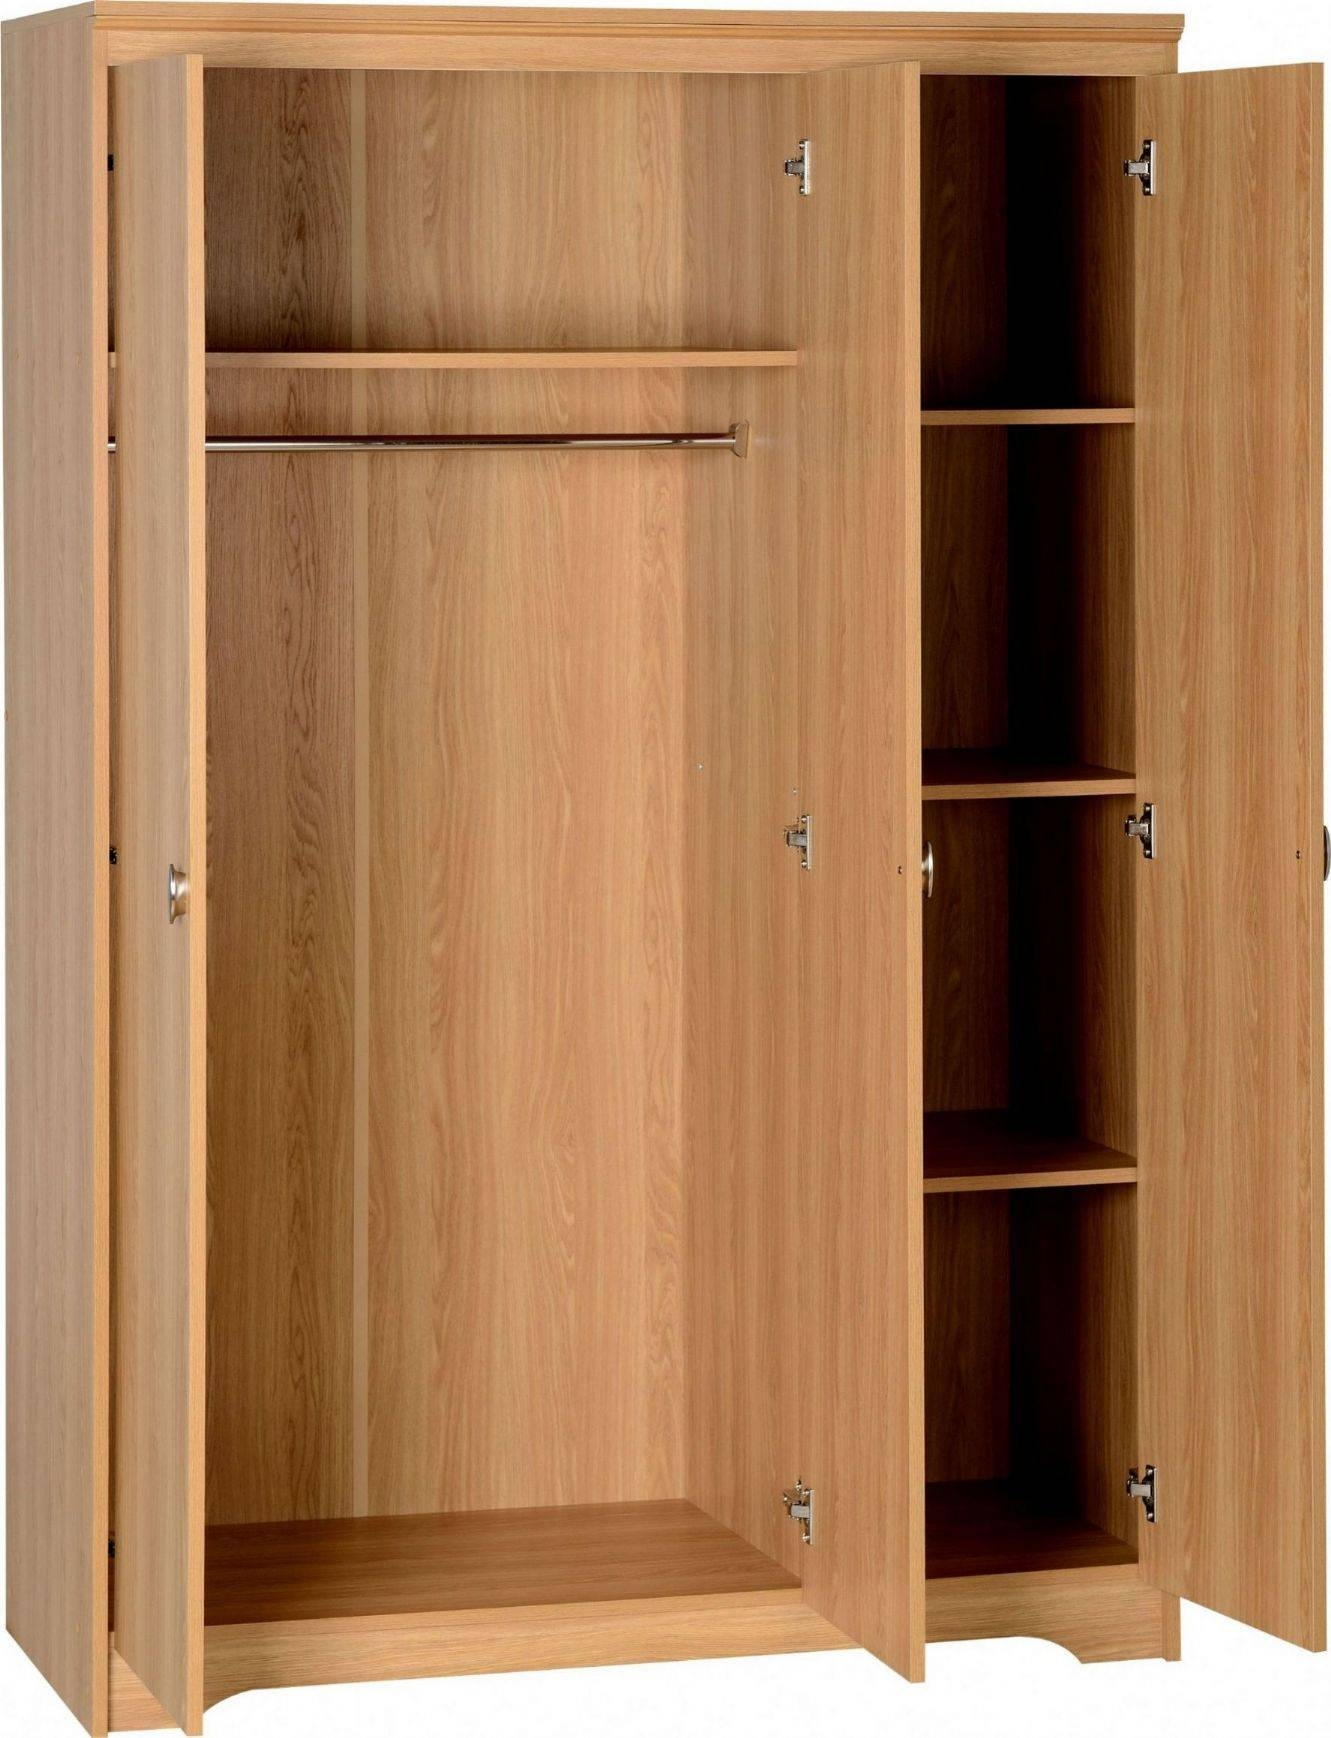 How To Make Wooden Wardrobe Doors, How To Make Writing Desk, How for 3 Door Wardrobe With Drawers and Shelves (Image 19 of 30)